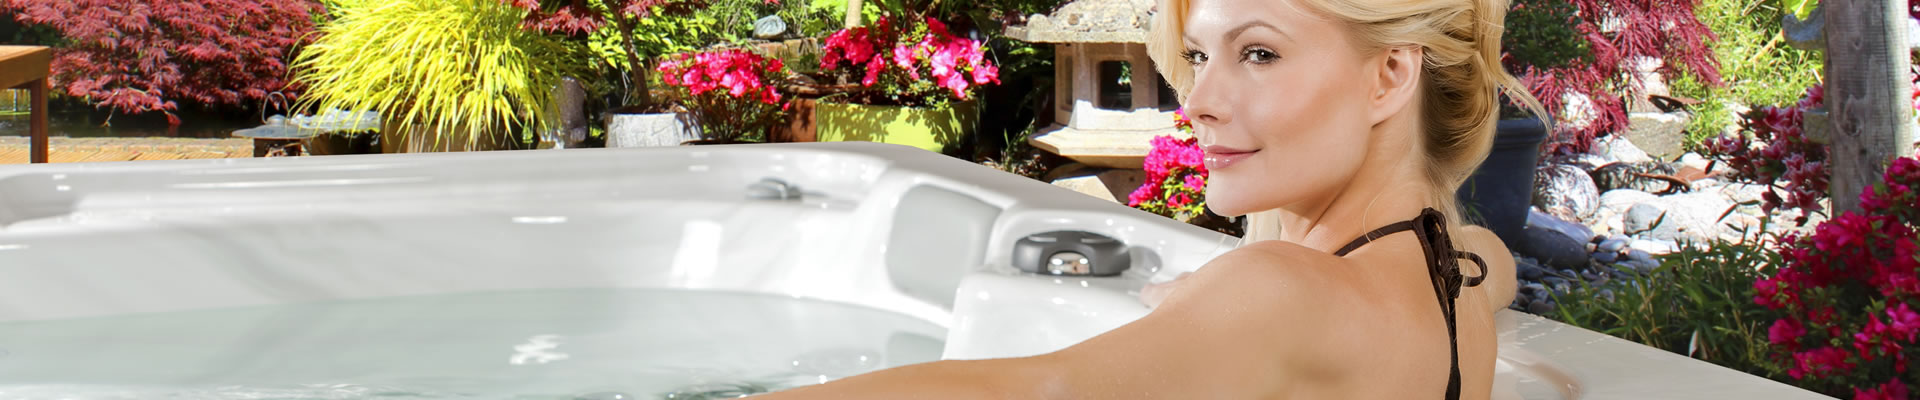 Garden Hot tubs / Spas